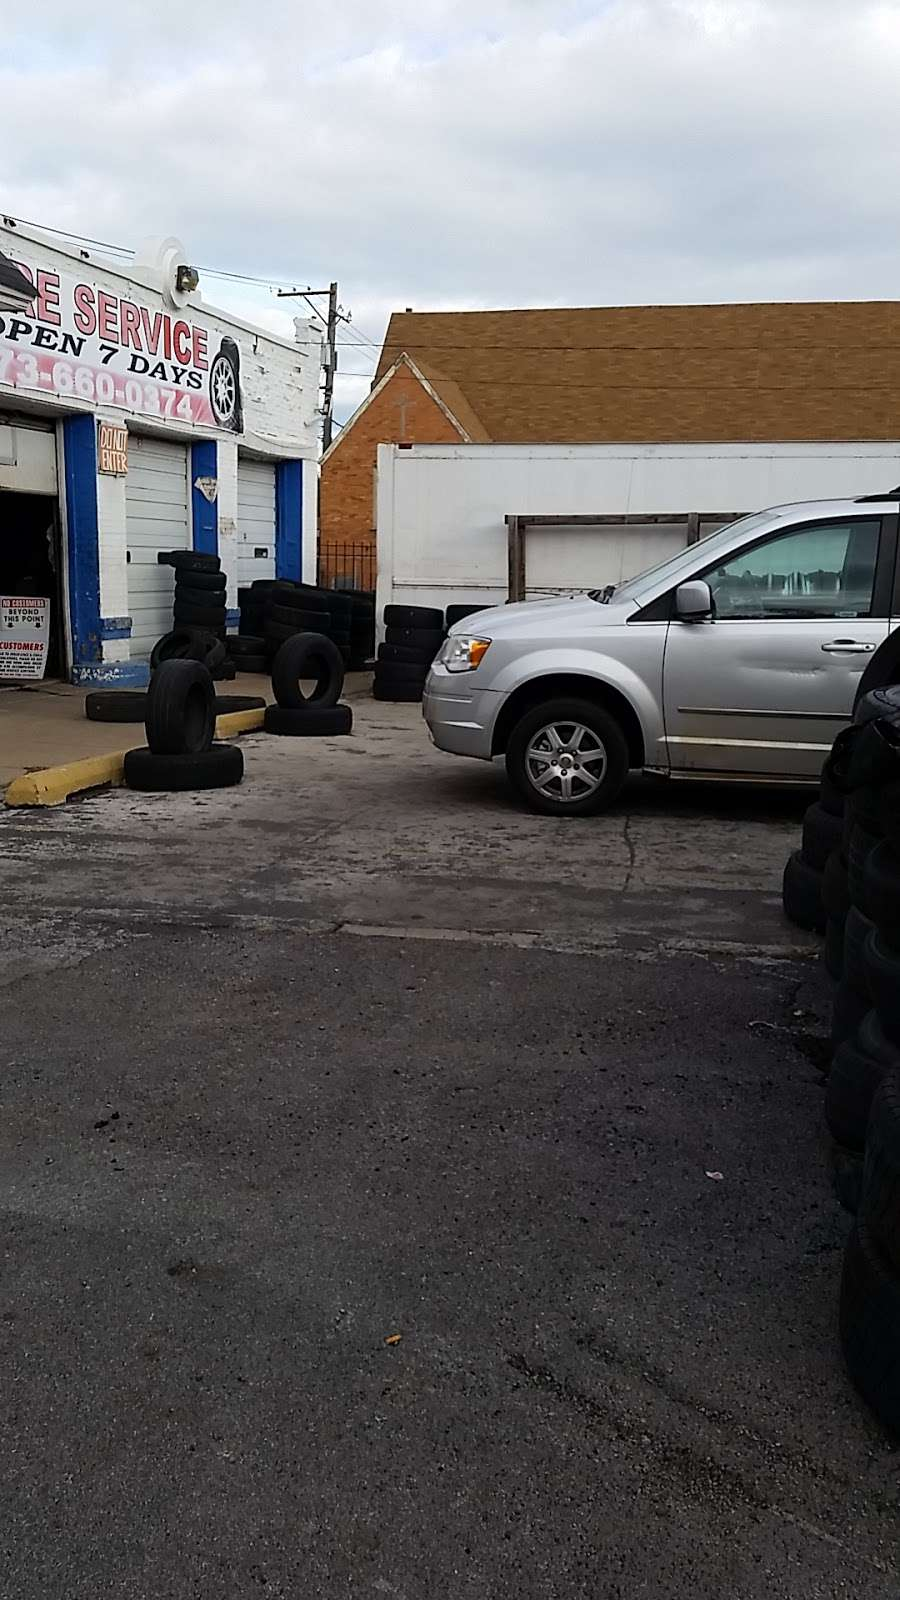 Babys DO Tire Shop - car repair  | Photo 2 of 6 | Address: 336 W 119th St, Chicago, IL 60628, USA | Phone: (773) 660-0374